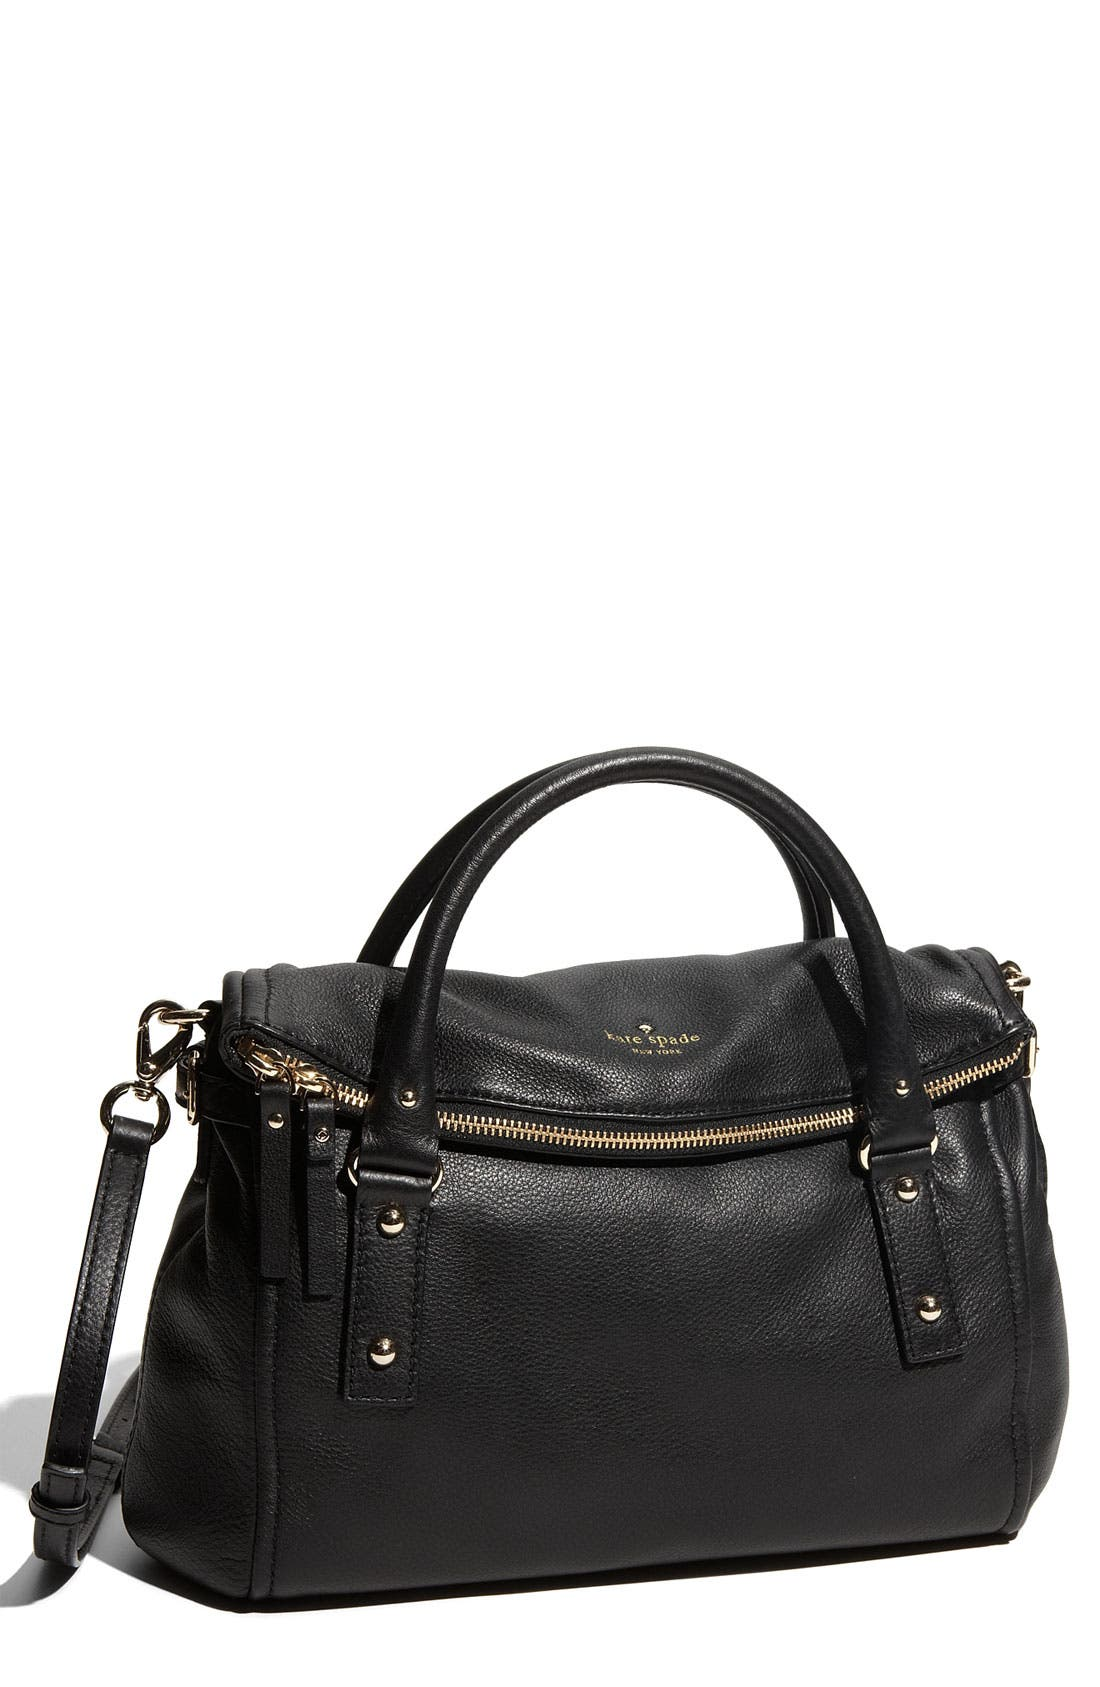 Alternate Image 1 Selected - kate spade new york 'cobble hill - leslie small' leather satchel